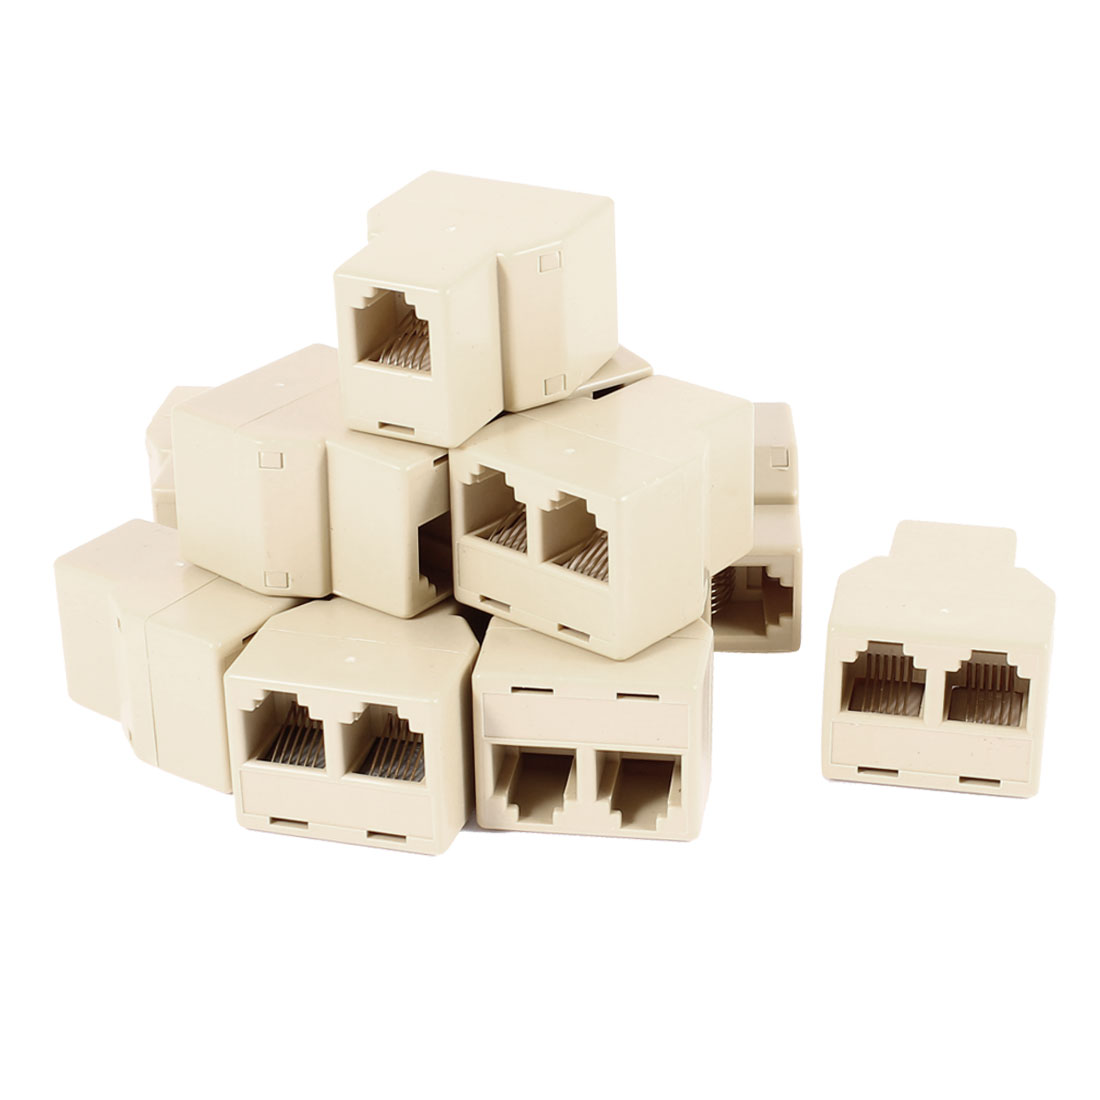 12 Pcs RJ11 6P6C Female to 2 Female Socket Connector Telephone Modular Splitter Adapter Yellow